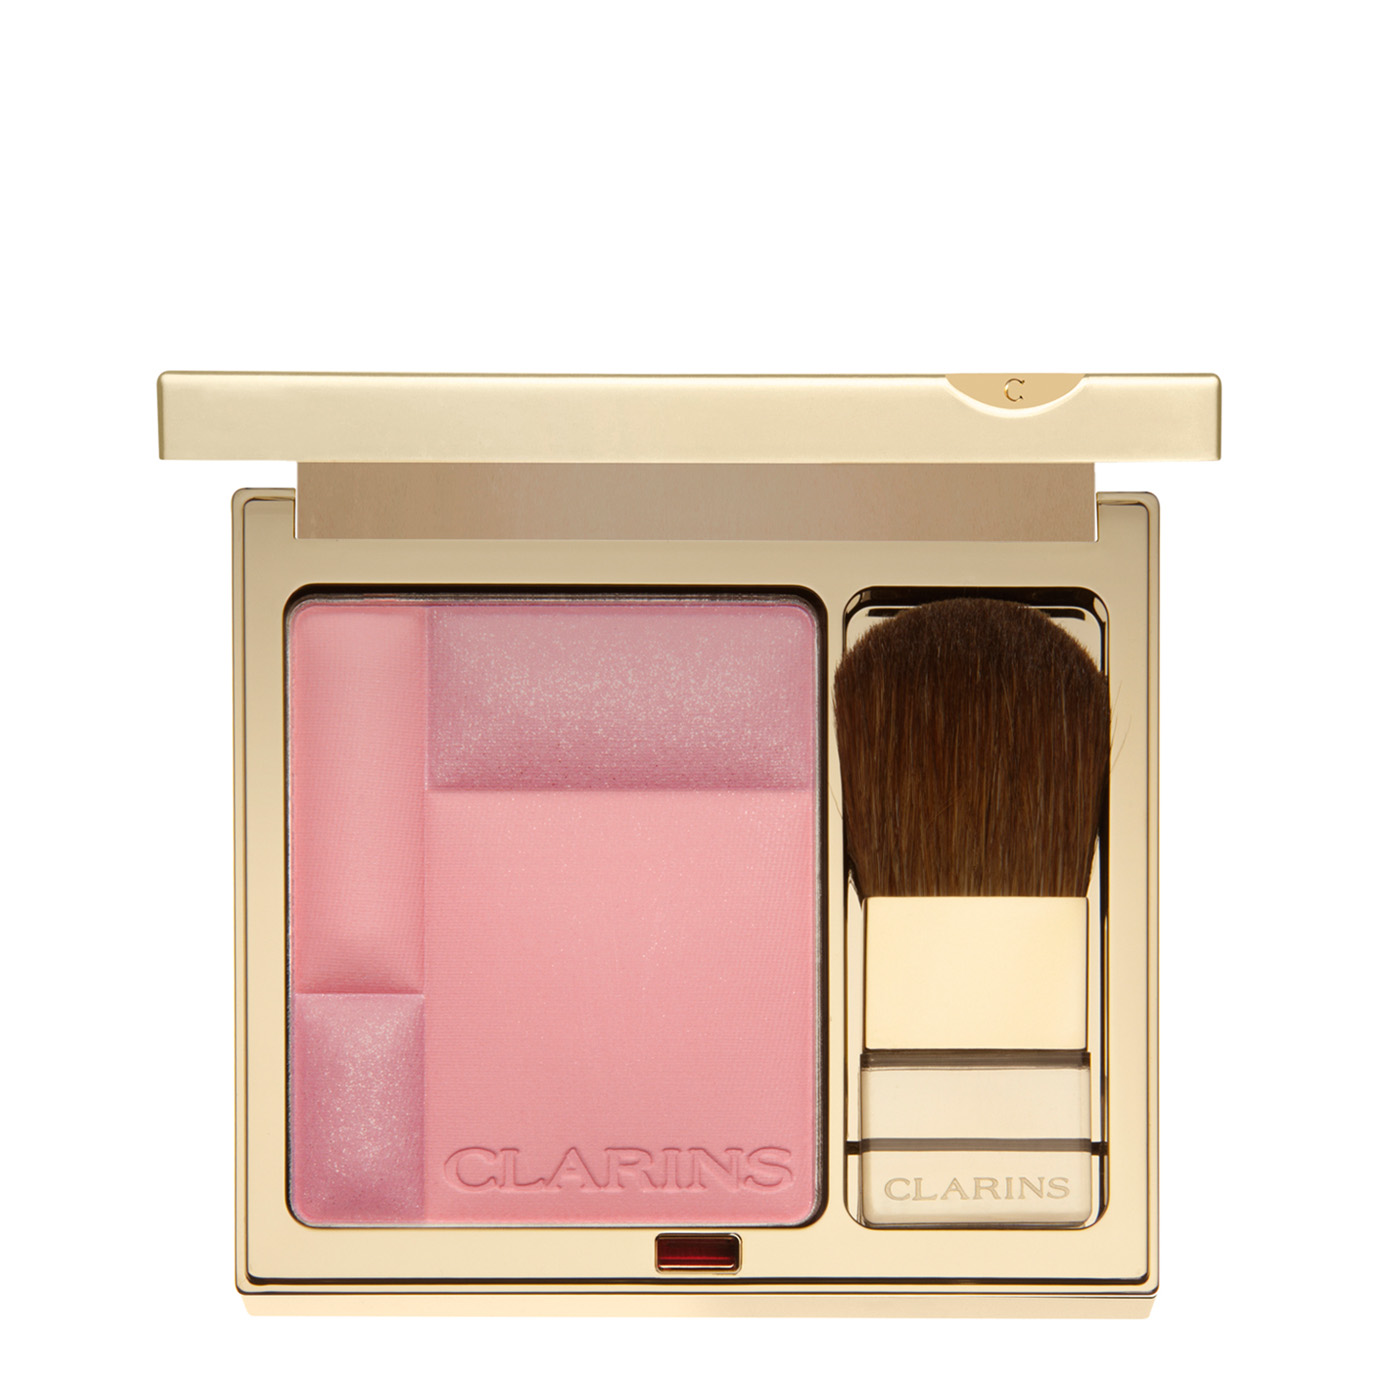 Clarins Blush Illuminating Cheek Colour